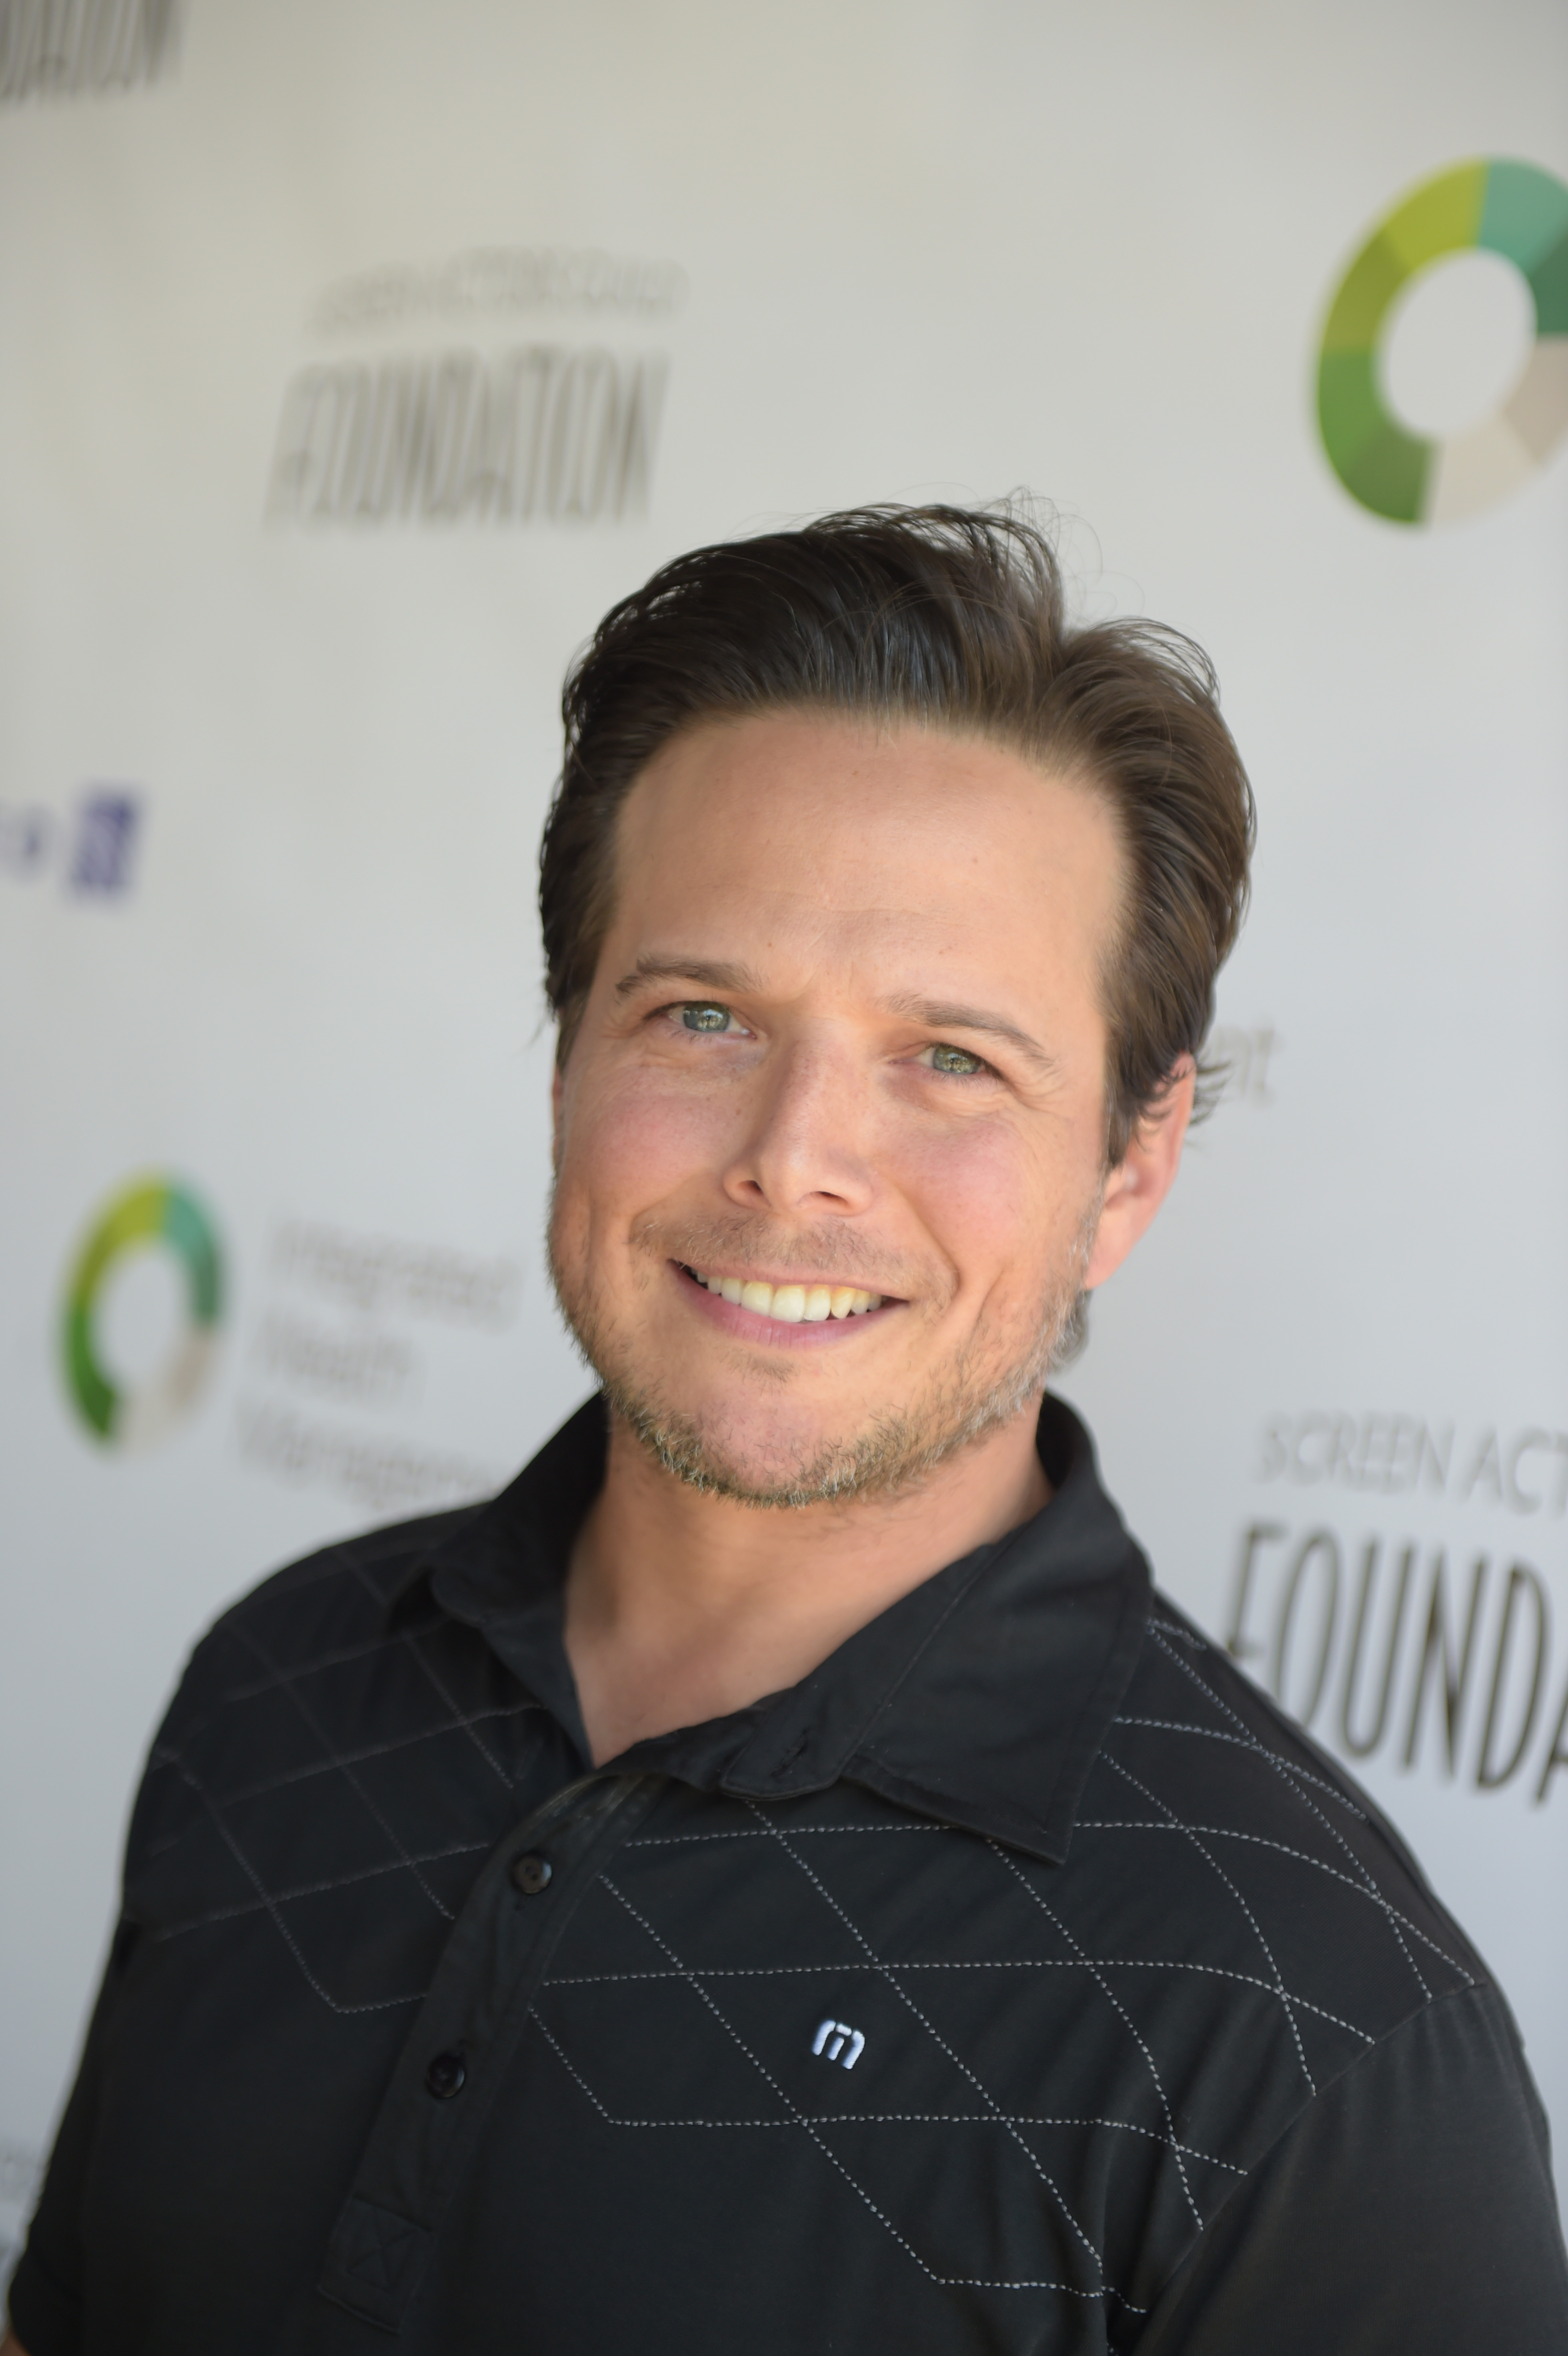 Host Scott Wolf attends The Screen Actors Guild Foundation's 6th Annual Los Angeles Golf Classic on June 8, 2015 in Burbank, California. (Photo by Jason Kempin/Getty Images for The Screen Actors Guild Foundation)